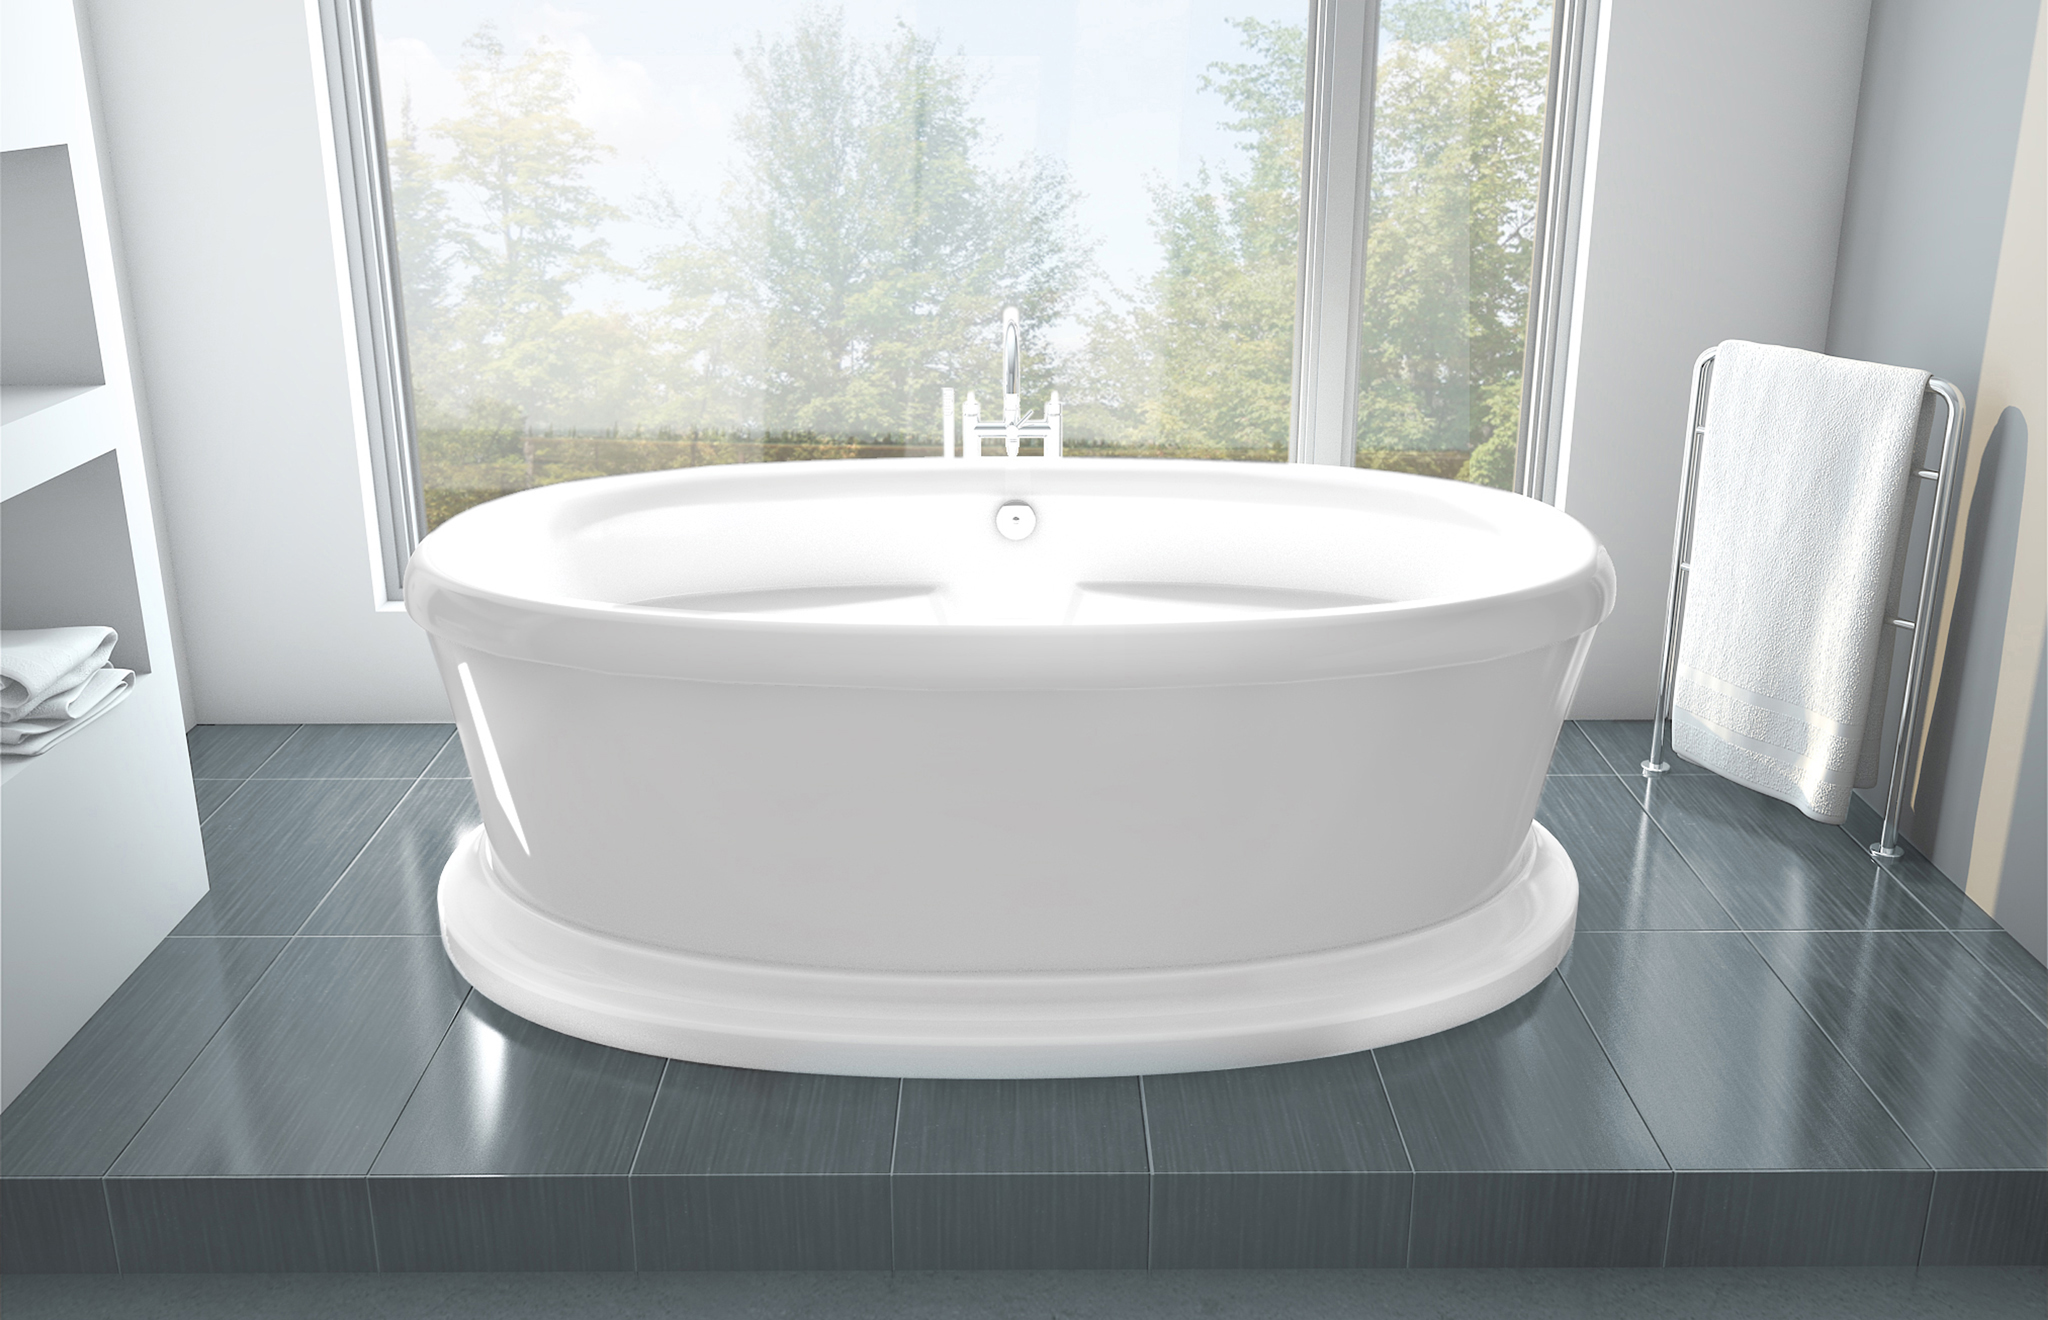 freestanding air jet tub legende pedestal baths oceania